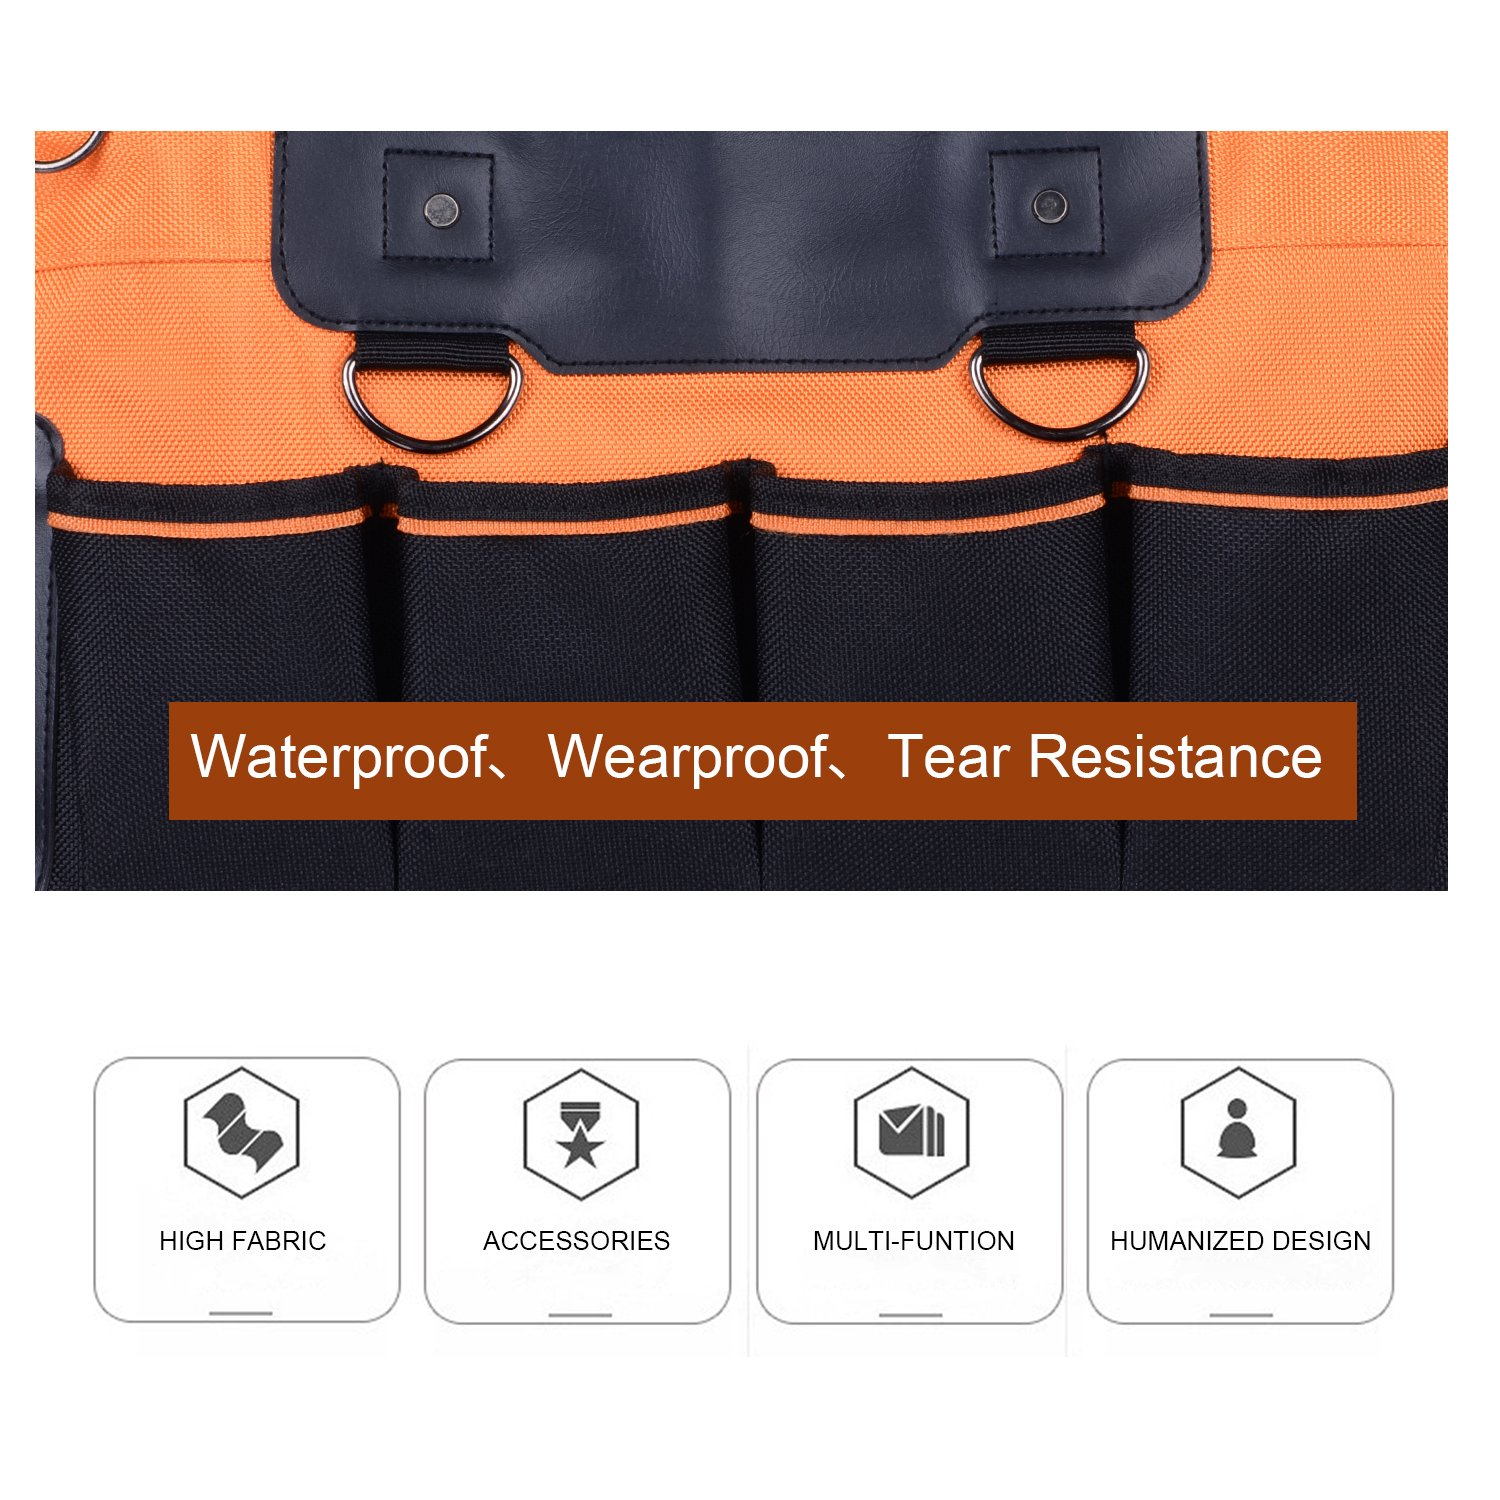 16 Inch 16 Pockets Wide Mouth Single-Shoulder Tool Bag Water Proof Ultra-Rigid Base Tool Storage and Organizer Bag by Sonyabecca (Image #5)